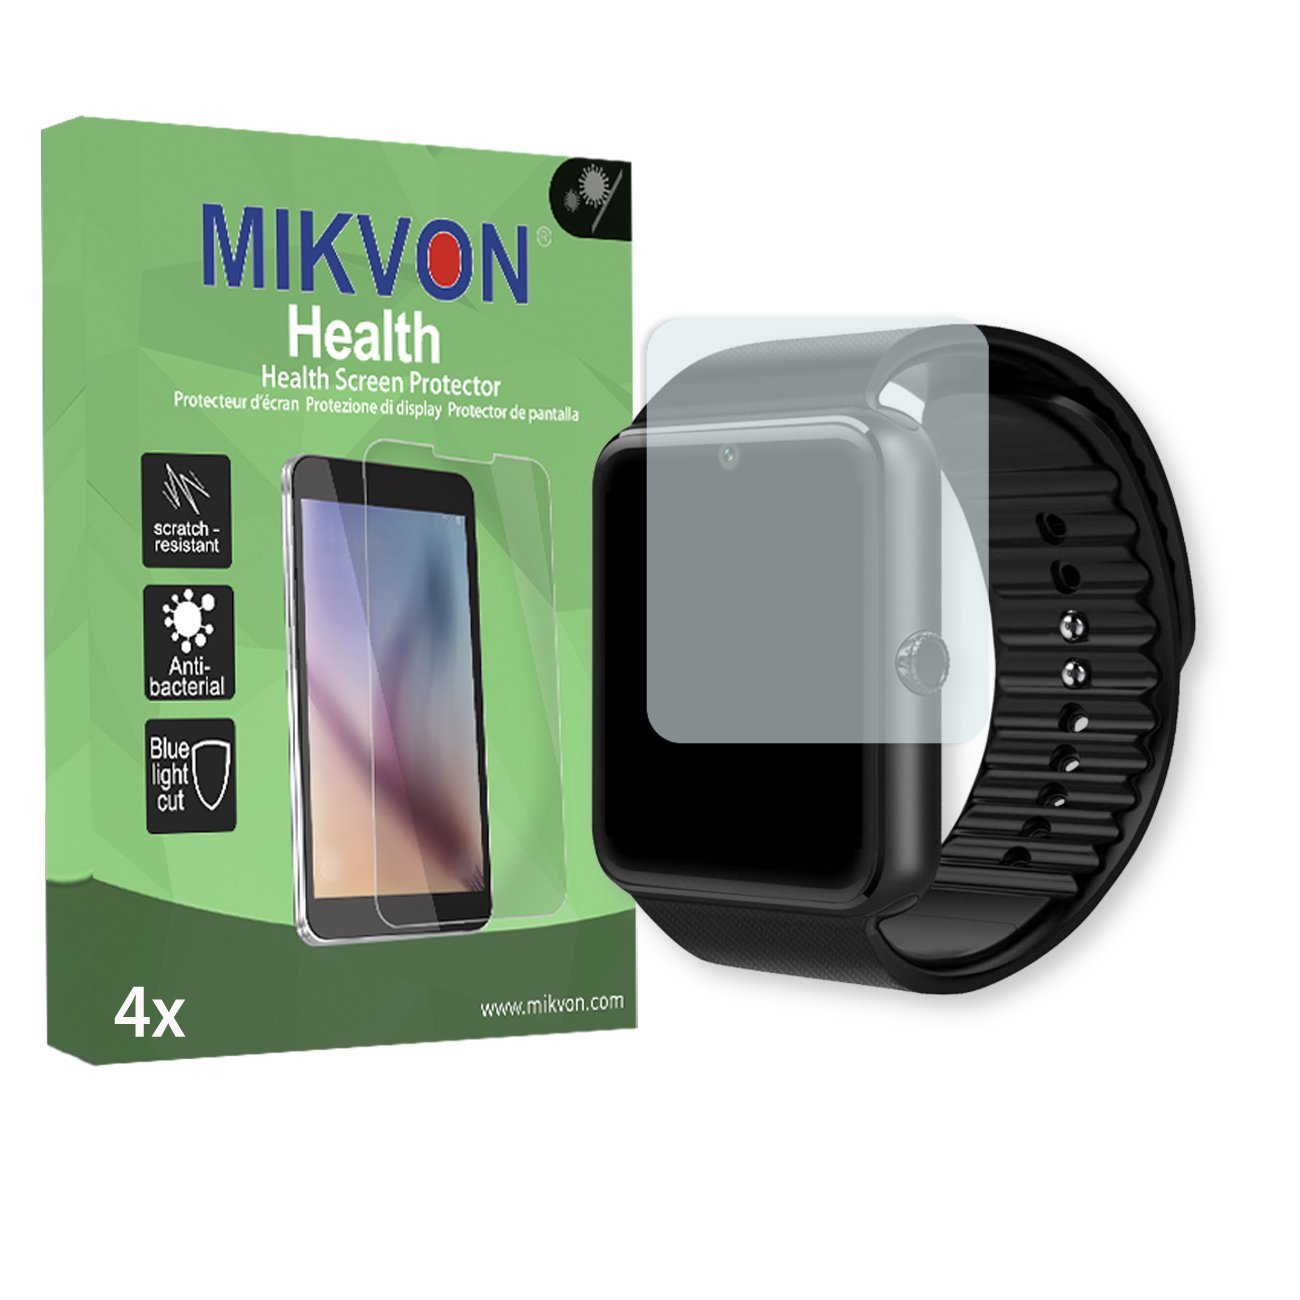 "MIKVON 4X Health Screen Protector LaTEC 1.54"" Bluetooth Smart Watch Antibacterial BlueLightCut Foil - Retail Package Accessories (Intentionally Smaller Than The Display Due to its Curved Surface)"